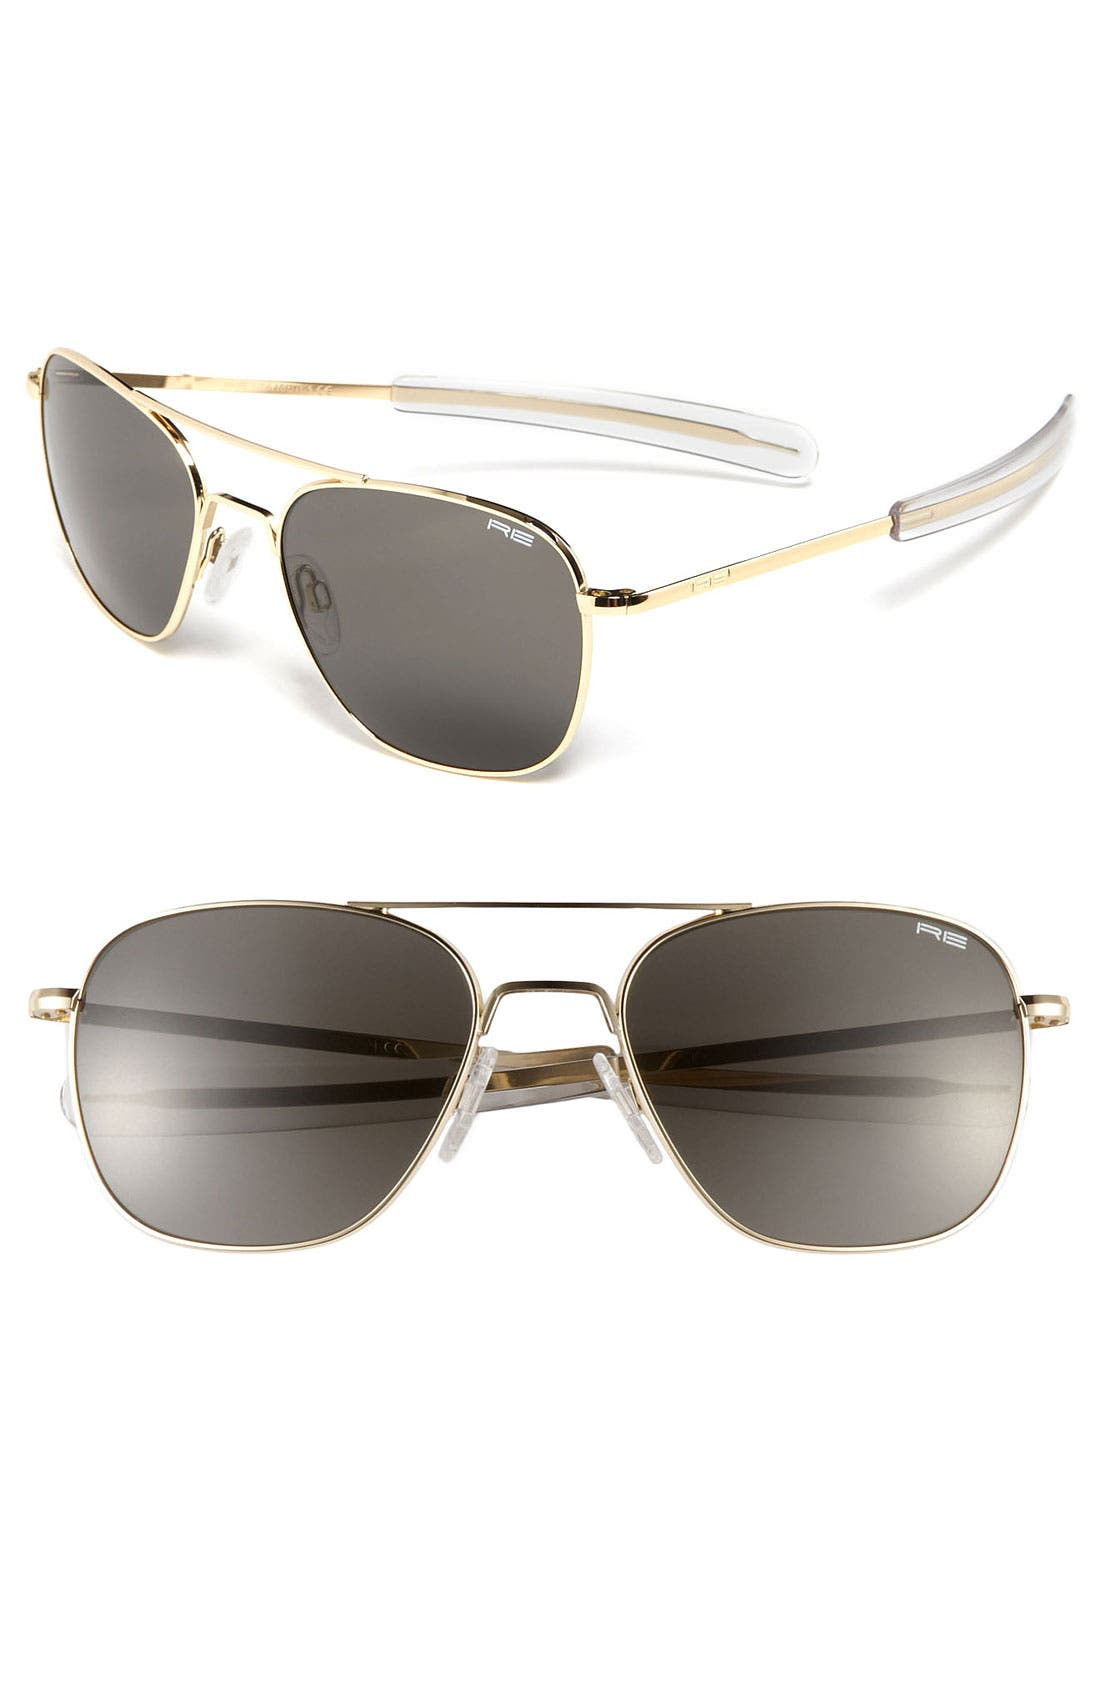 Main Image - Randolph Engineering 58mm Aviator Sunglasses